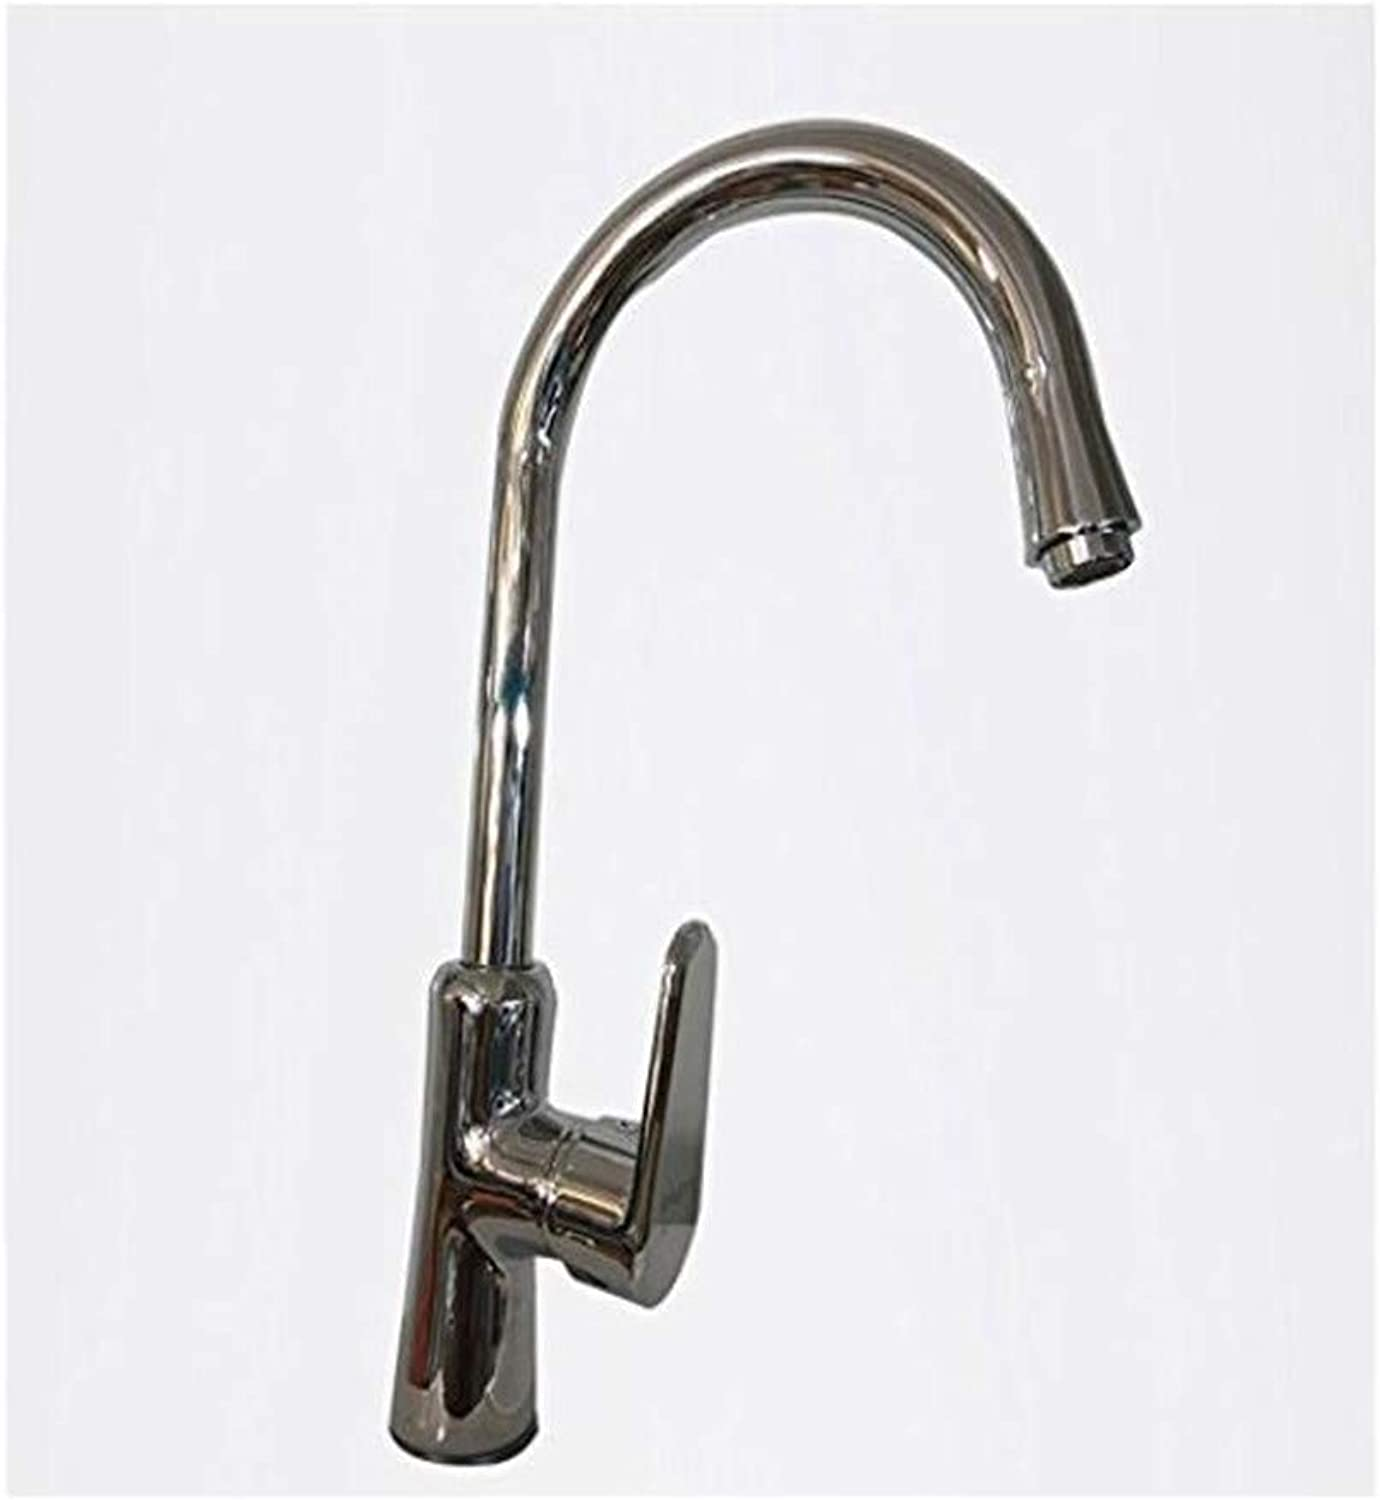 Faucet Retro Kitchen Mixer Faucet Kitchen Copper Sanitary Ware Water Tank Cold and Hot Water Faucet